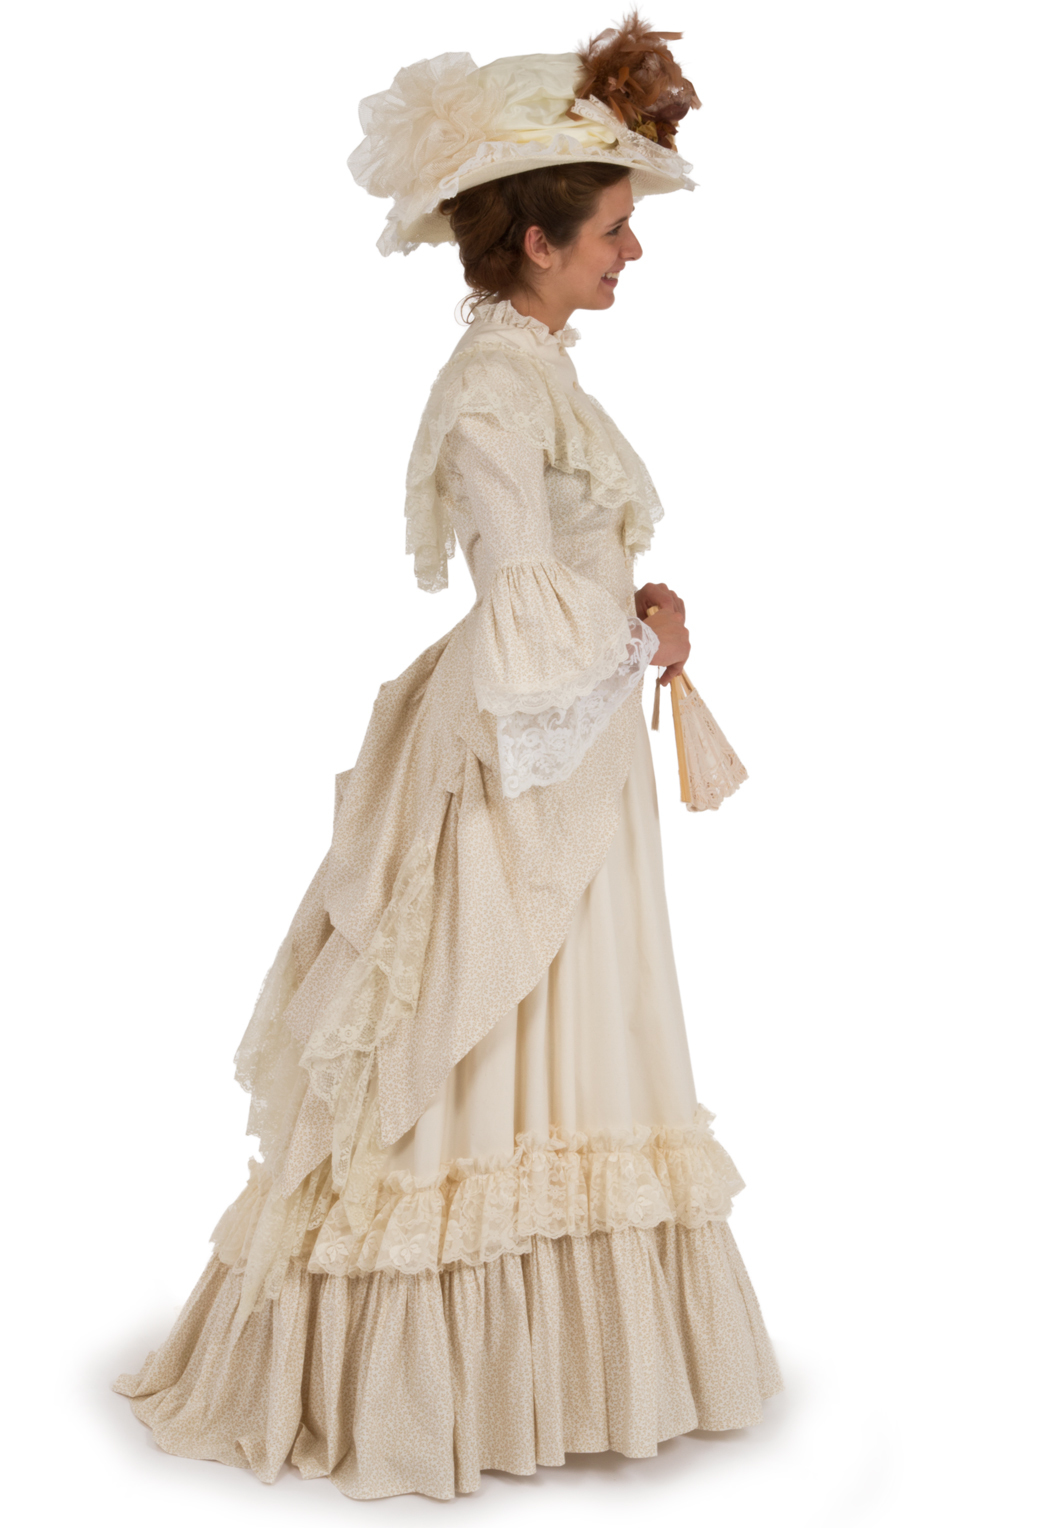 The Victorian Wedding Dress Belle Epoque Recollections Blog